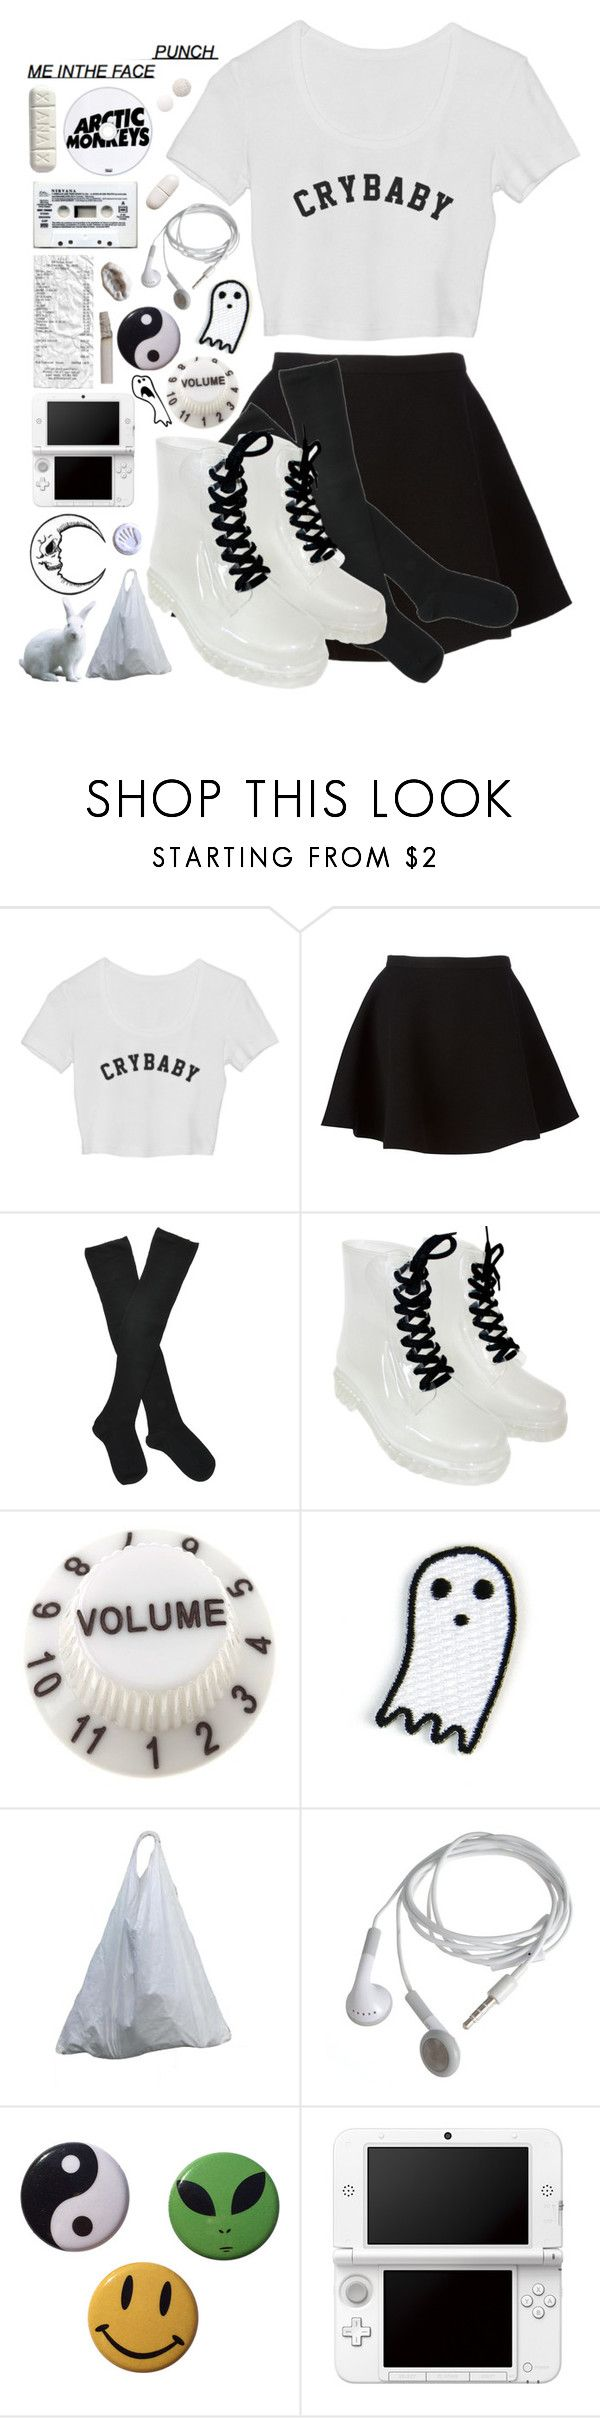 """they call u crybaby but u dnt fuuckin care"" by aaliviaa ❤ liked on Polyvore featuring Neil Barrett, Fogal, Mokuyobi Threads, Nintendo and Guide London"